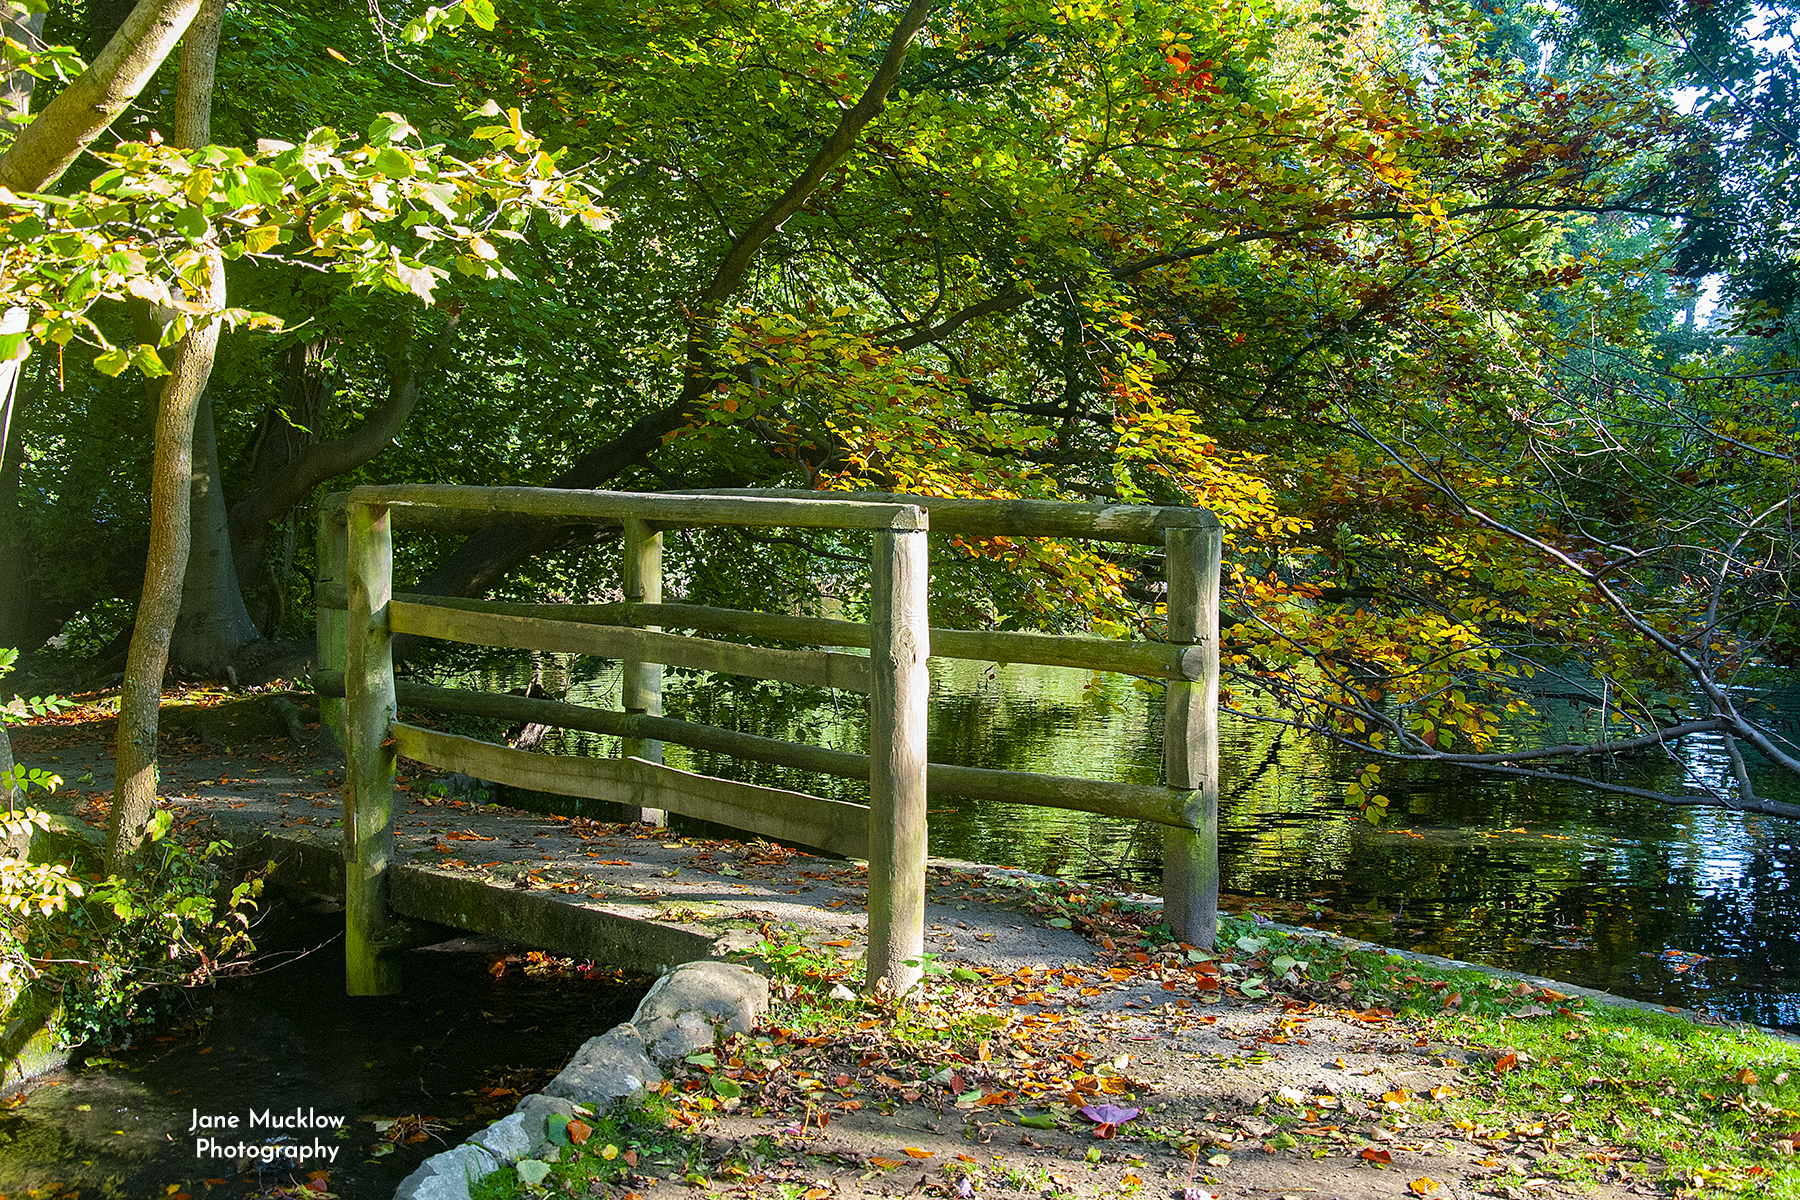 Photo of a bridge and Autumn leaves, at Bradbourne Lakes, Sevenoaks, by Jane Mucklow